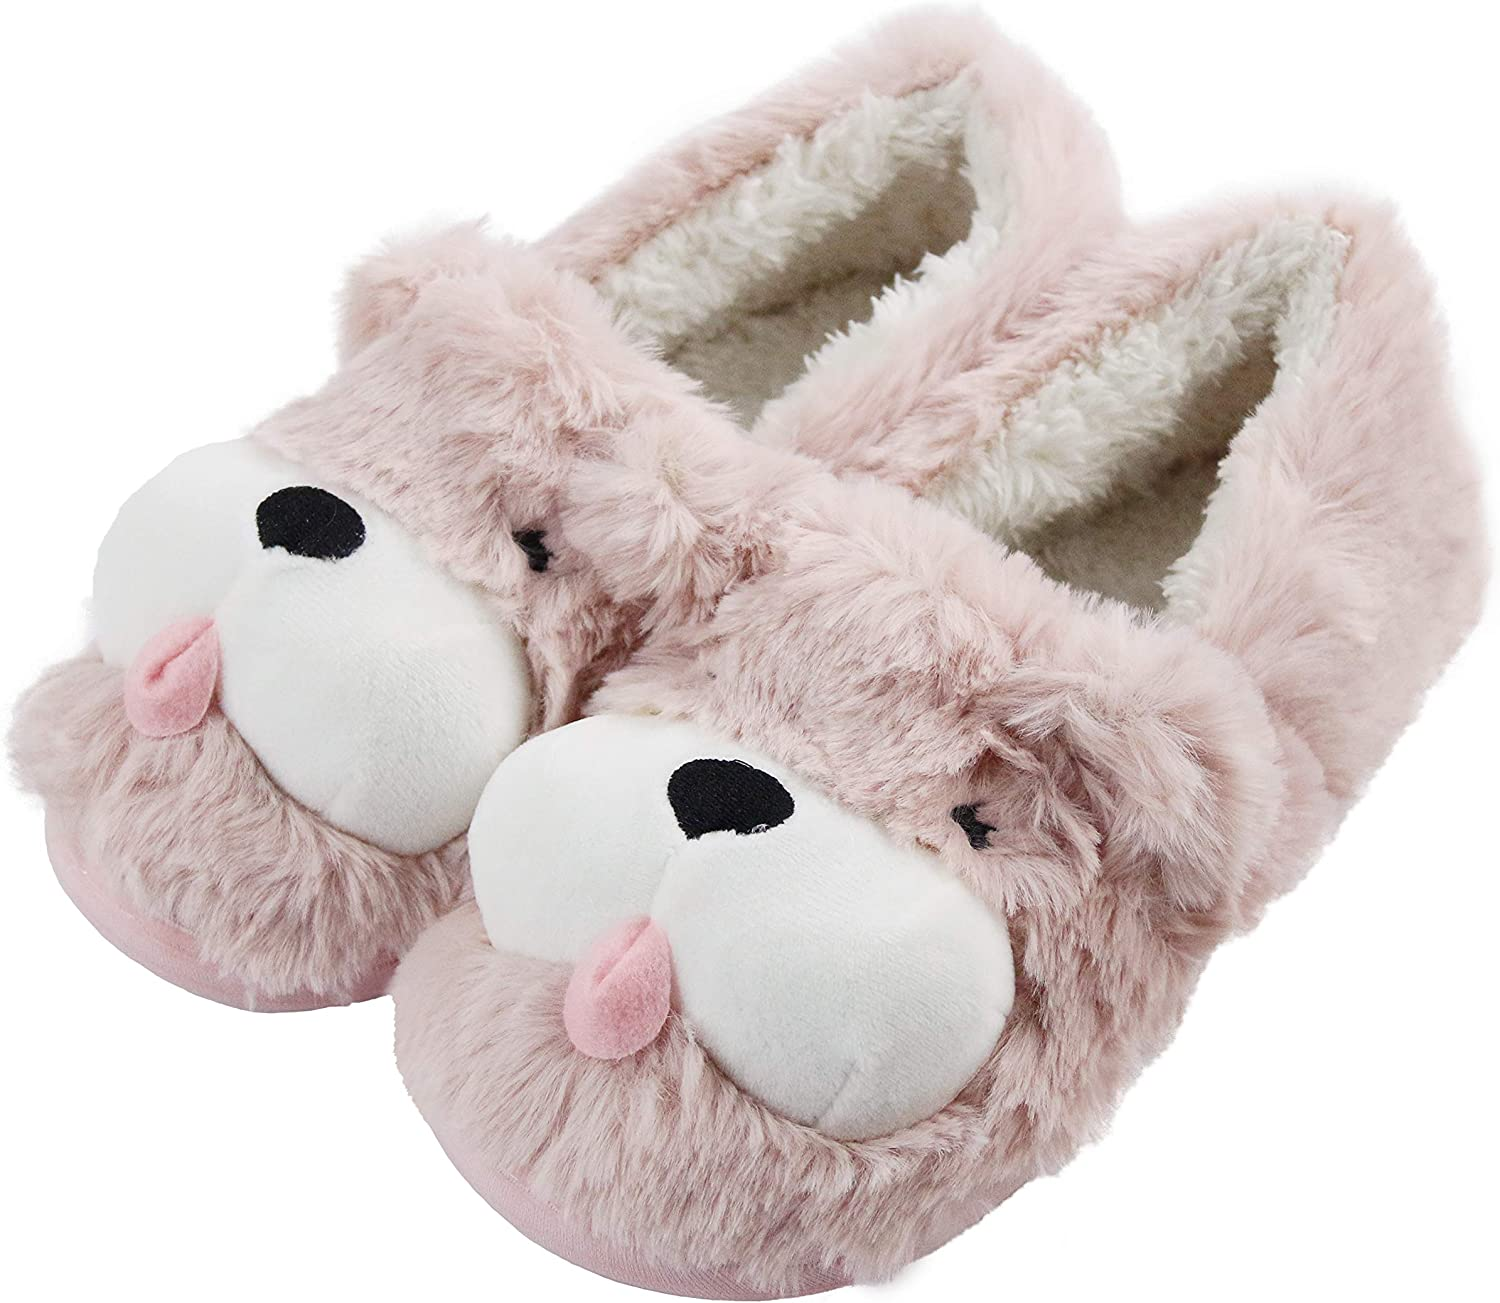 Excellence Sanfiago Fuzzy Puppy Dog Women Direct stock discount Slippers Non-Slip Fluf Heels with